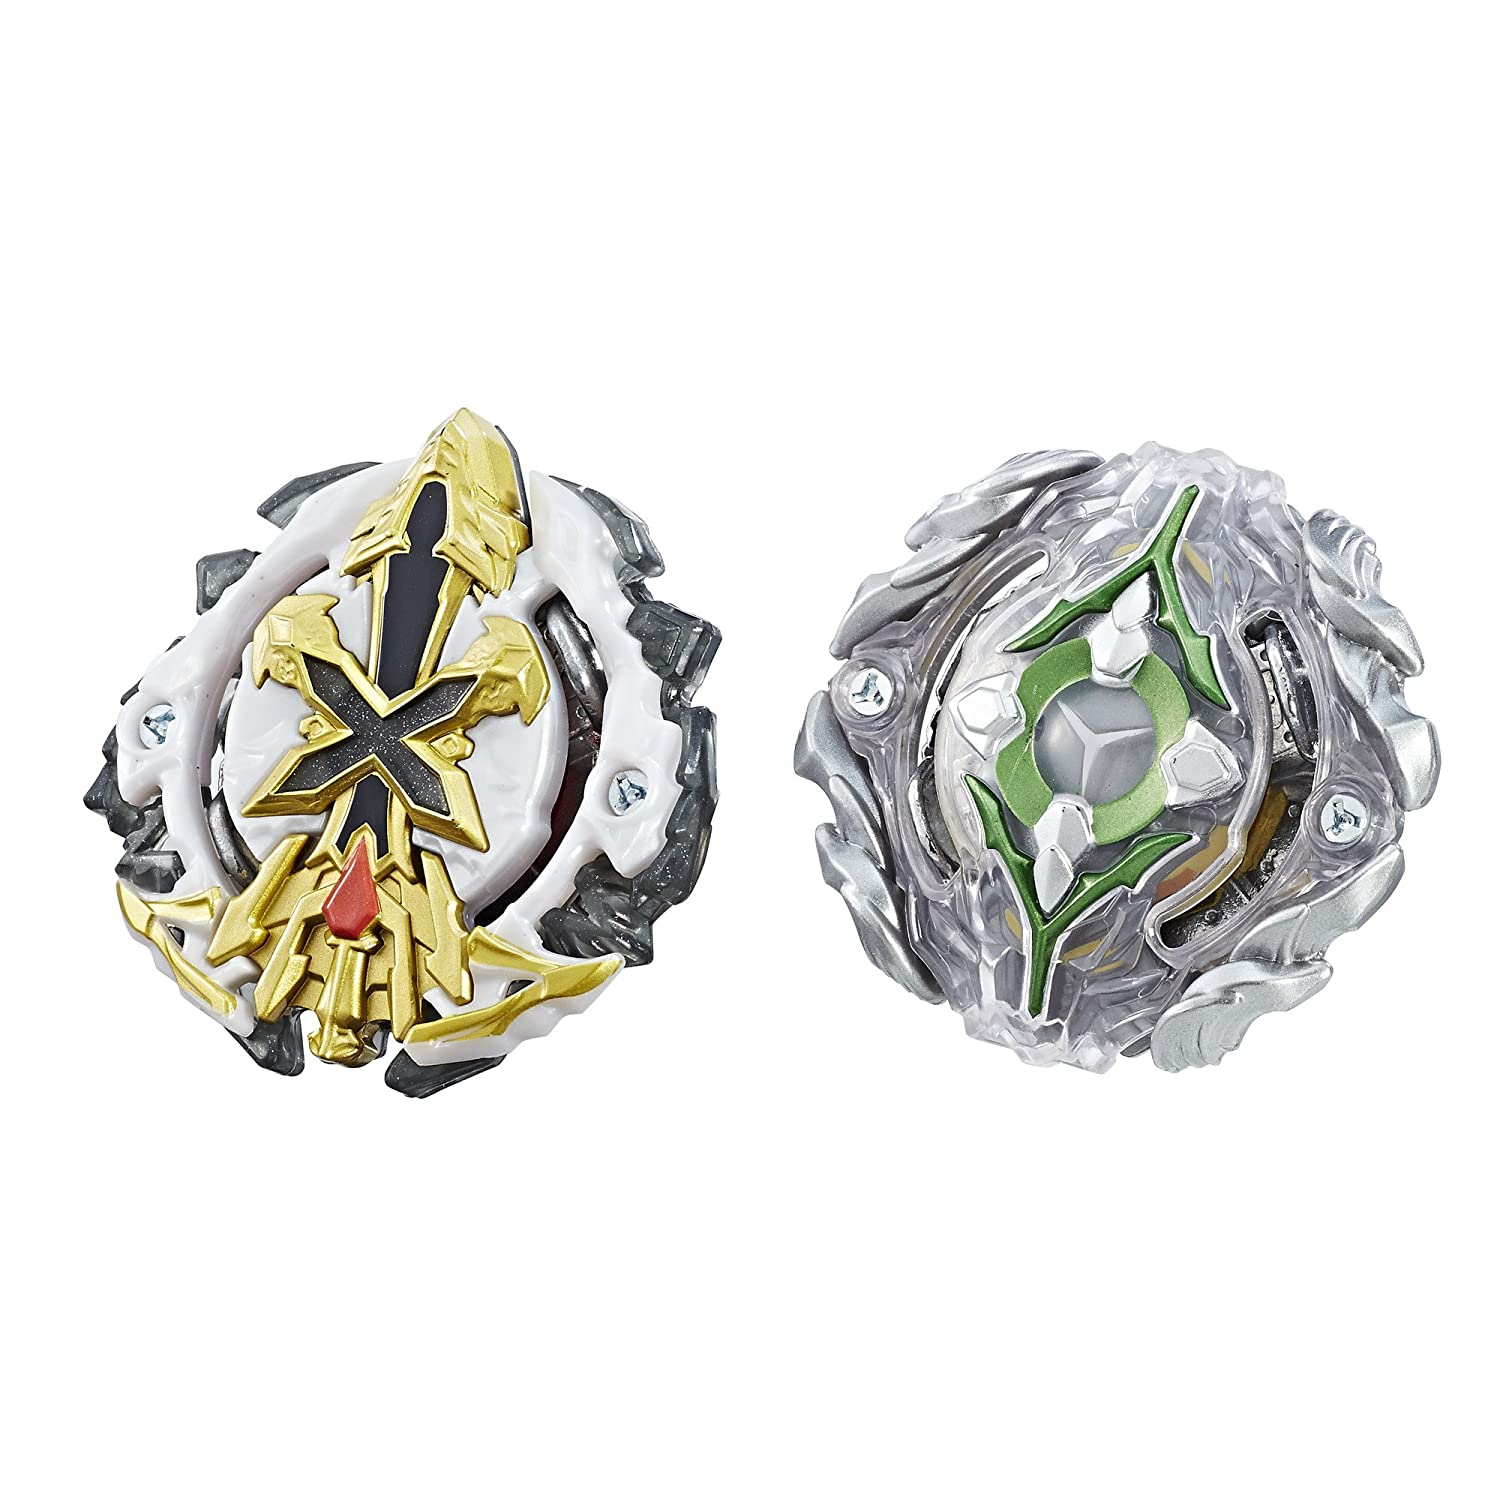 Beyblade Burst Evolution Dual Pack Xcalius X2 and Yegdrion Y2 Hasbro E1065